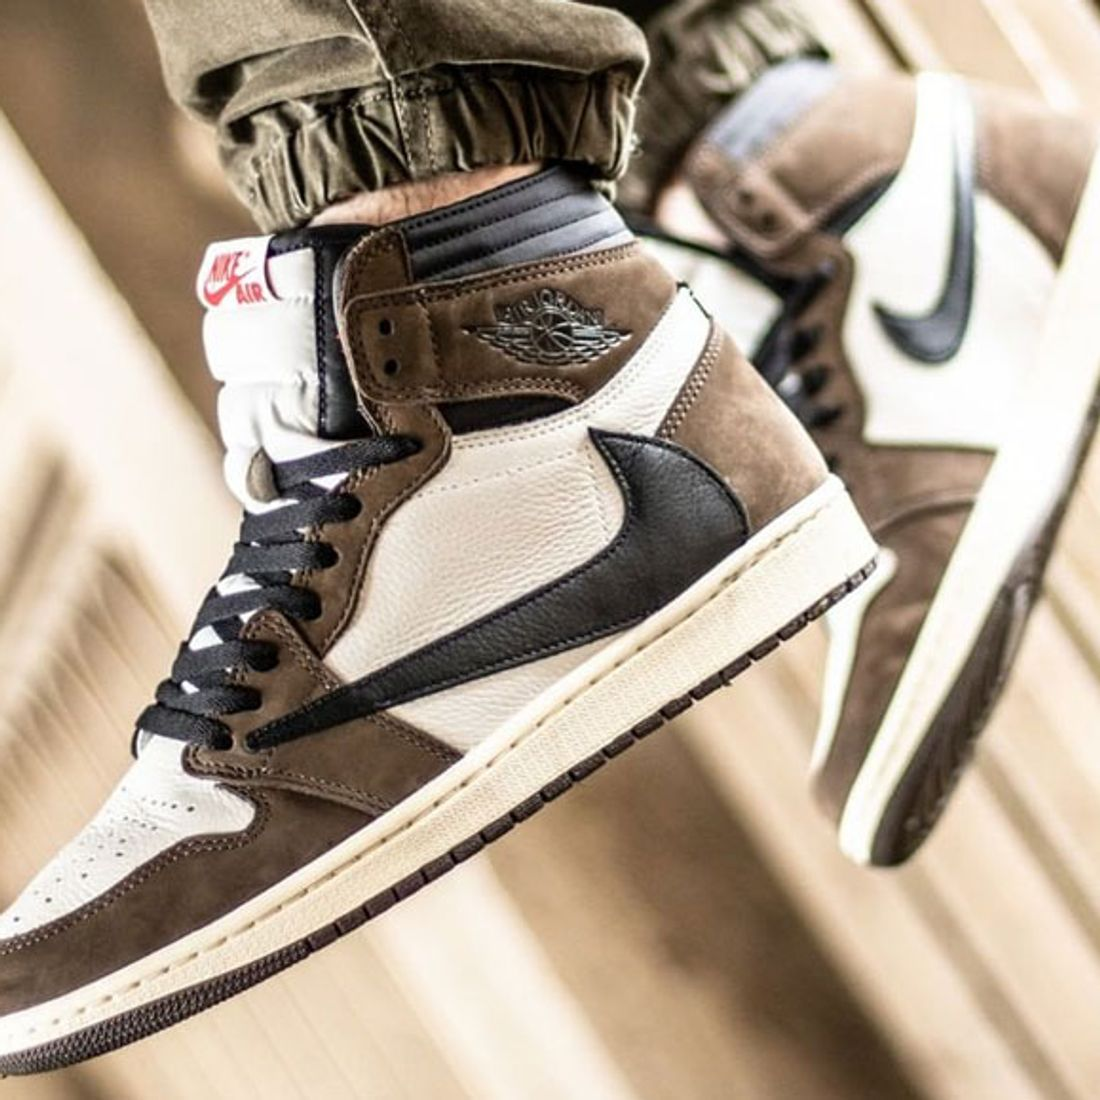 where to buy the travis scott x air jordan 1 sneaker freaker travis scott x air jordan 1